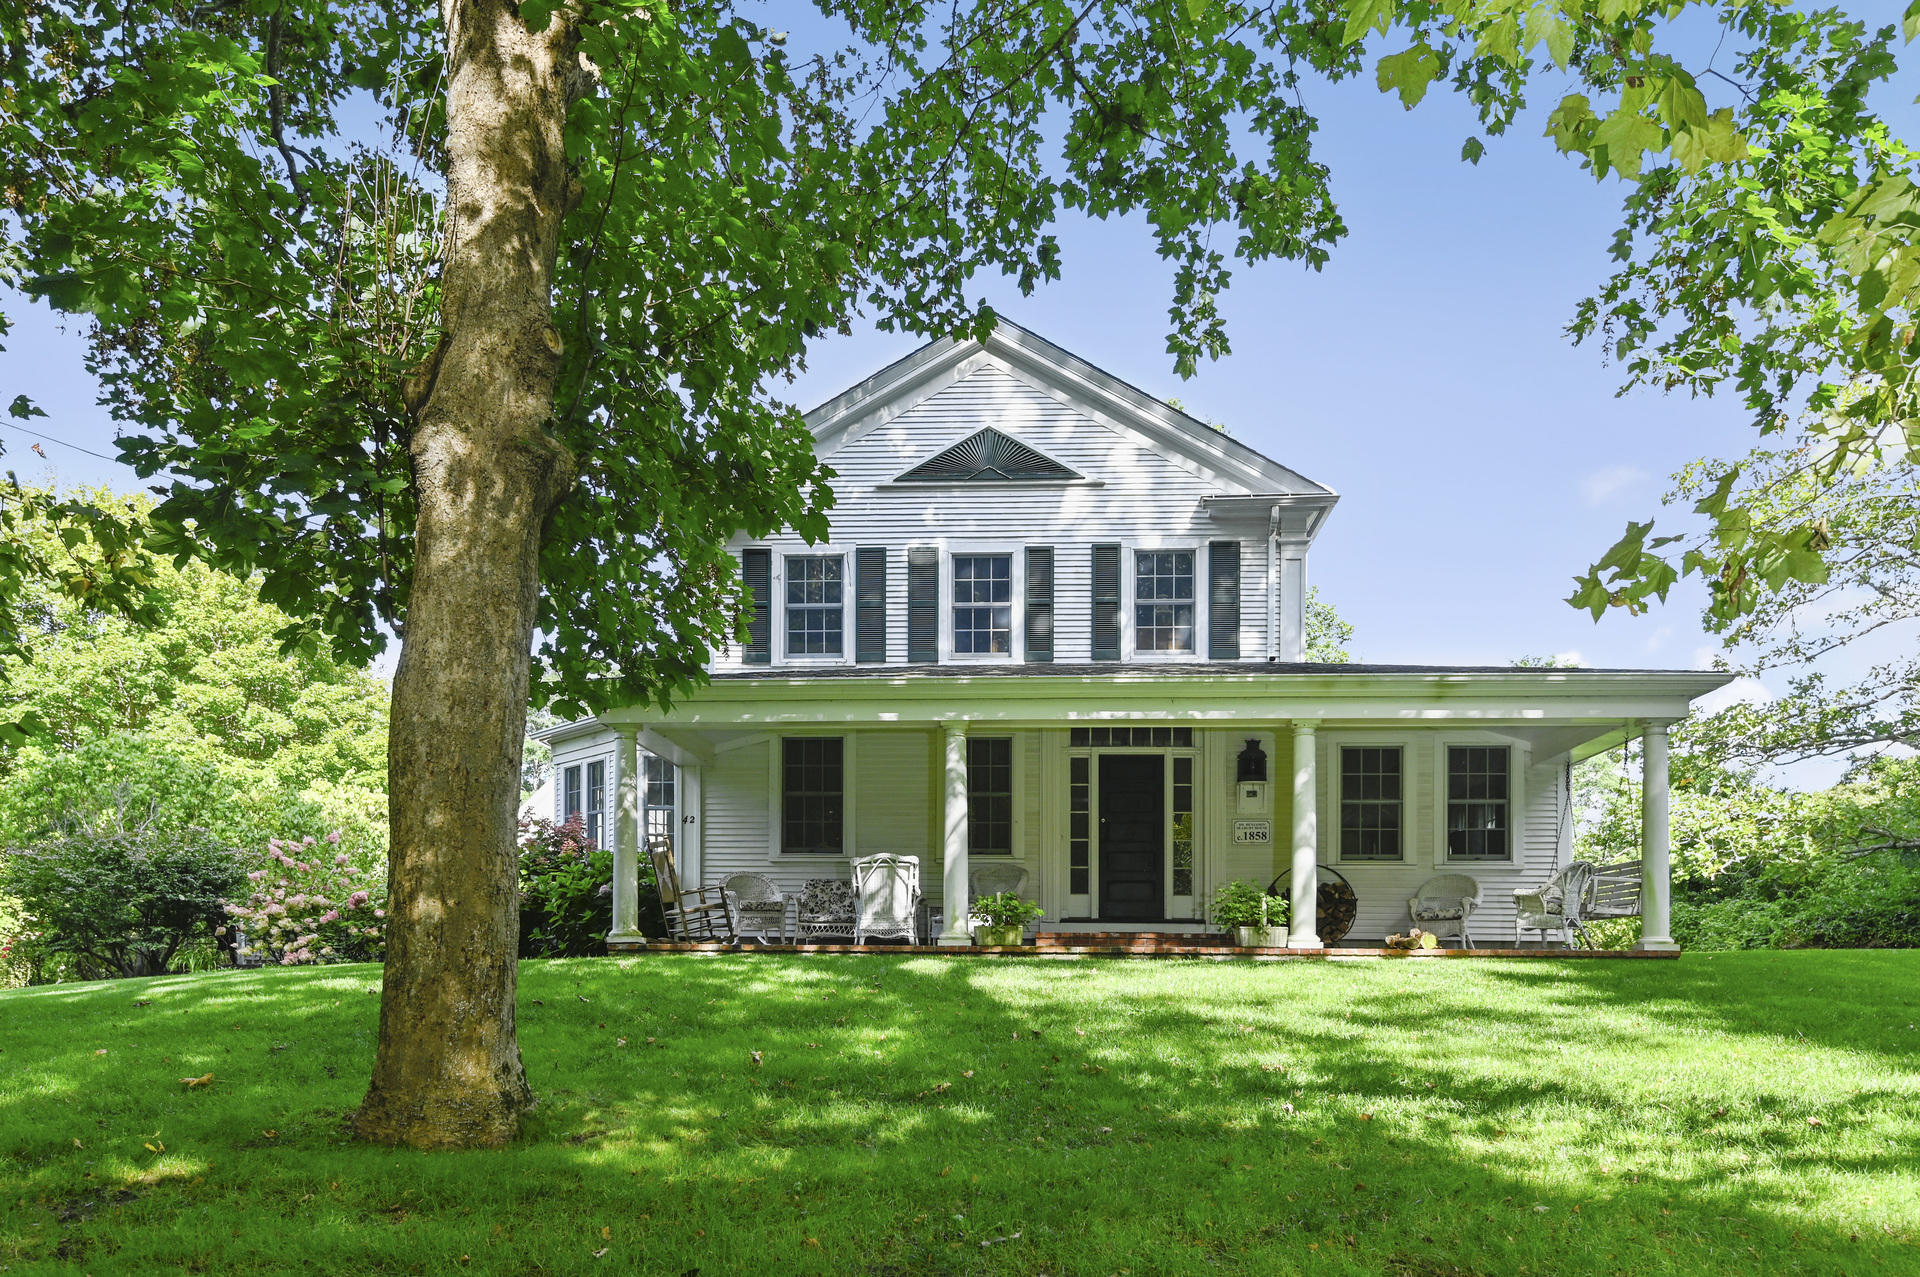 42-tonset-road-orleans-ma-02653